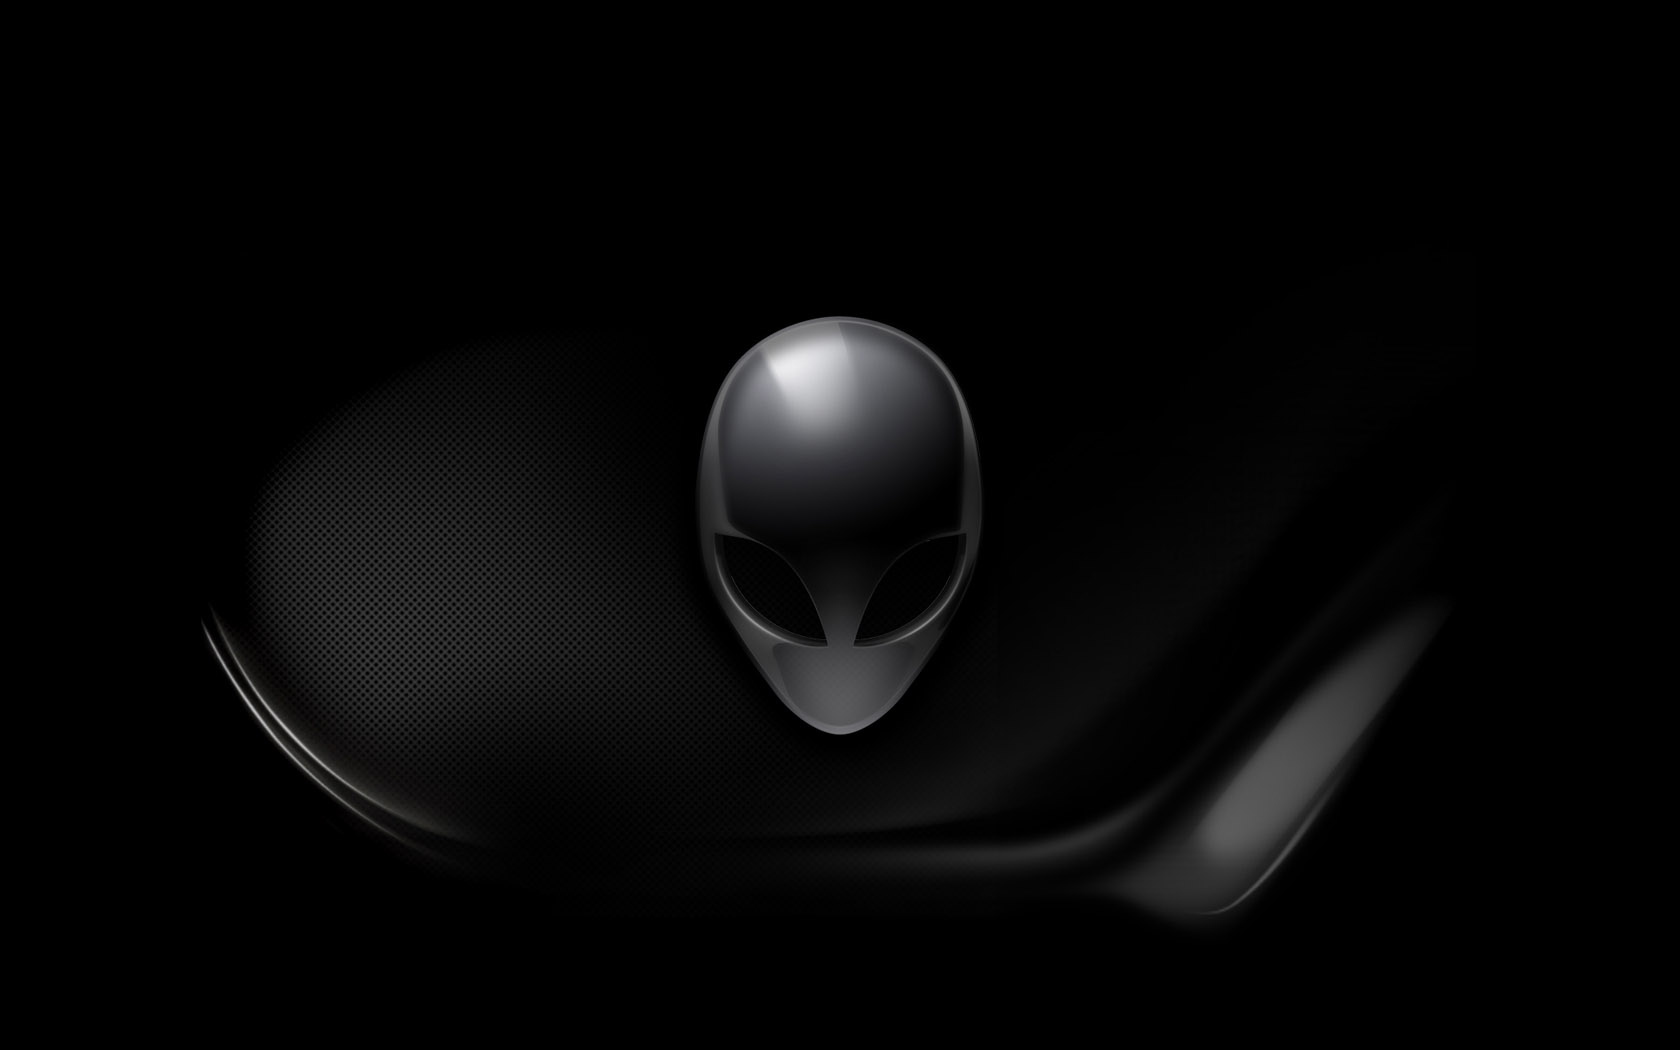 Alienware Wallpaper: 126 Alienware HD Wallpapers